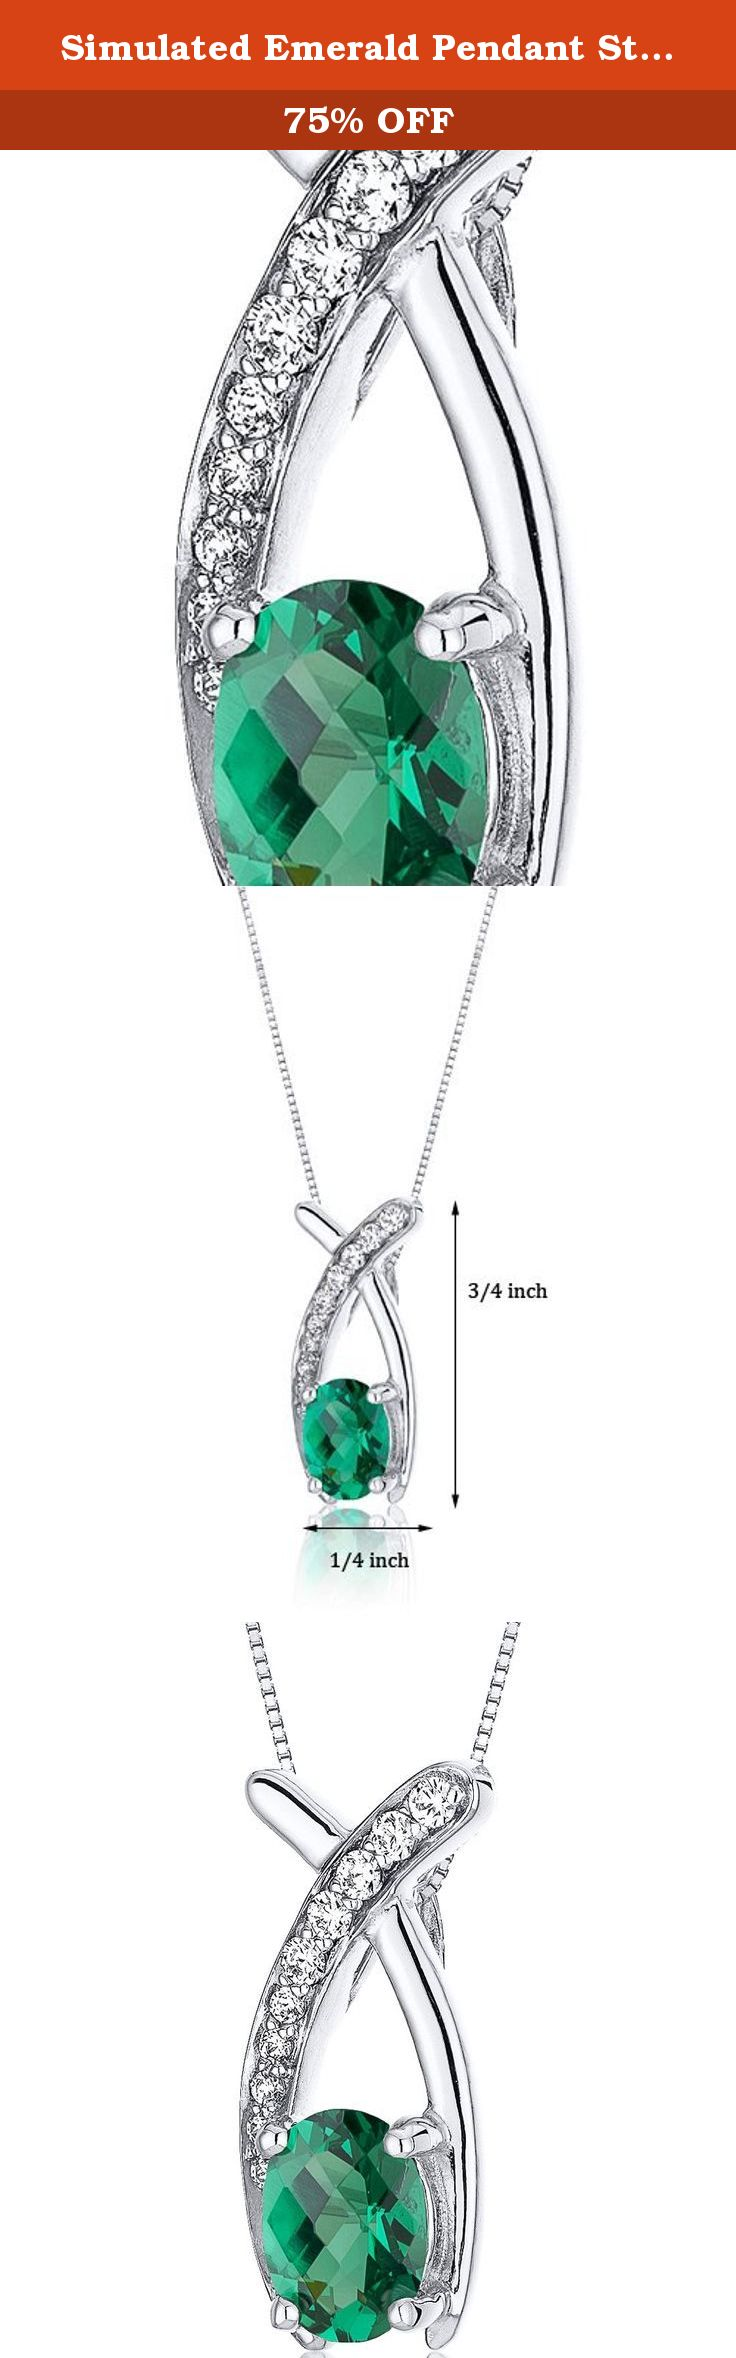 Simulated Emerald Pendant Sterling Silver Oval Shape with CZ Accents. Center Stone: Simulated Emerald, Oval Cut with Checkerboard Top, 7 x 5 mm, 0.75 carats, Rich Forest Green Hue with Brilliant Sparkle. Side Stones: 10 pieces Super Sparkling Machine Cut White Cubic Zirconia. Pendant: 1.50 grams, Pure Sterling Silver with .925 stamp, Pendant features exceptional Design, Craftsmanship anding. Perfect gift for Mothers Day, Birthdays, Valentines Day, Graduation, Christmas or just about any...